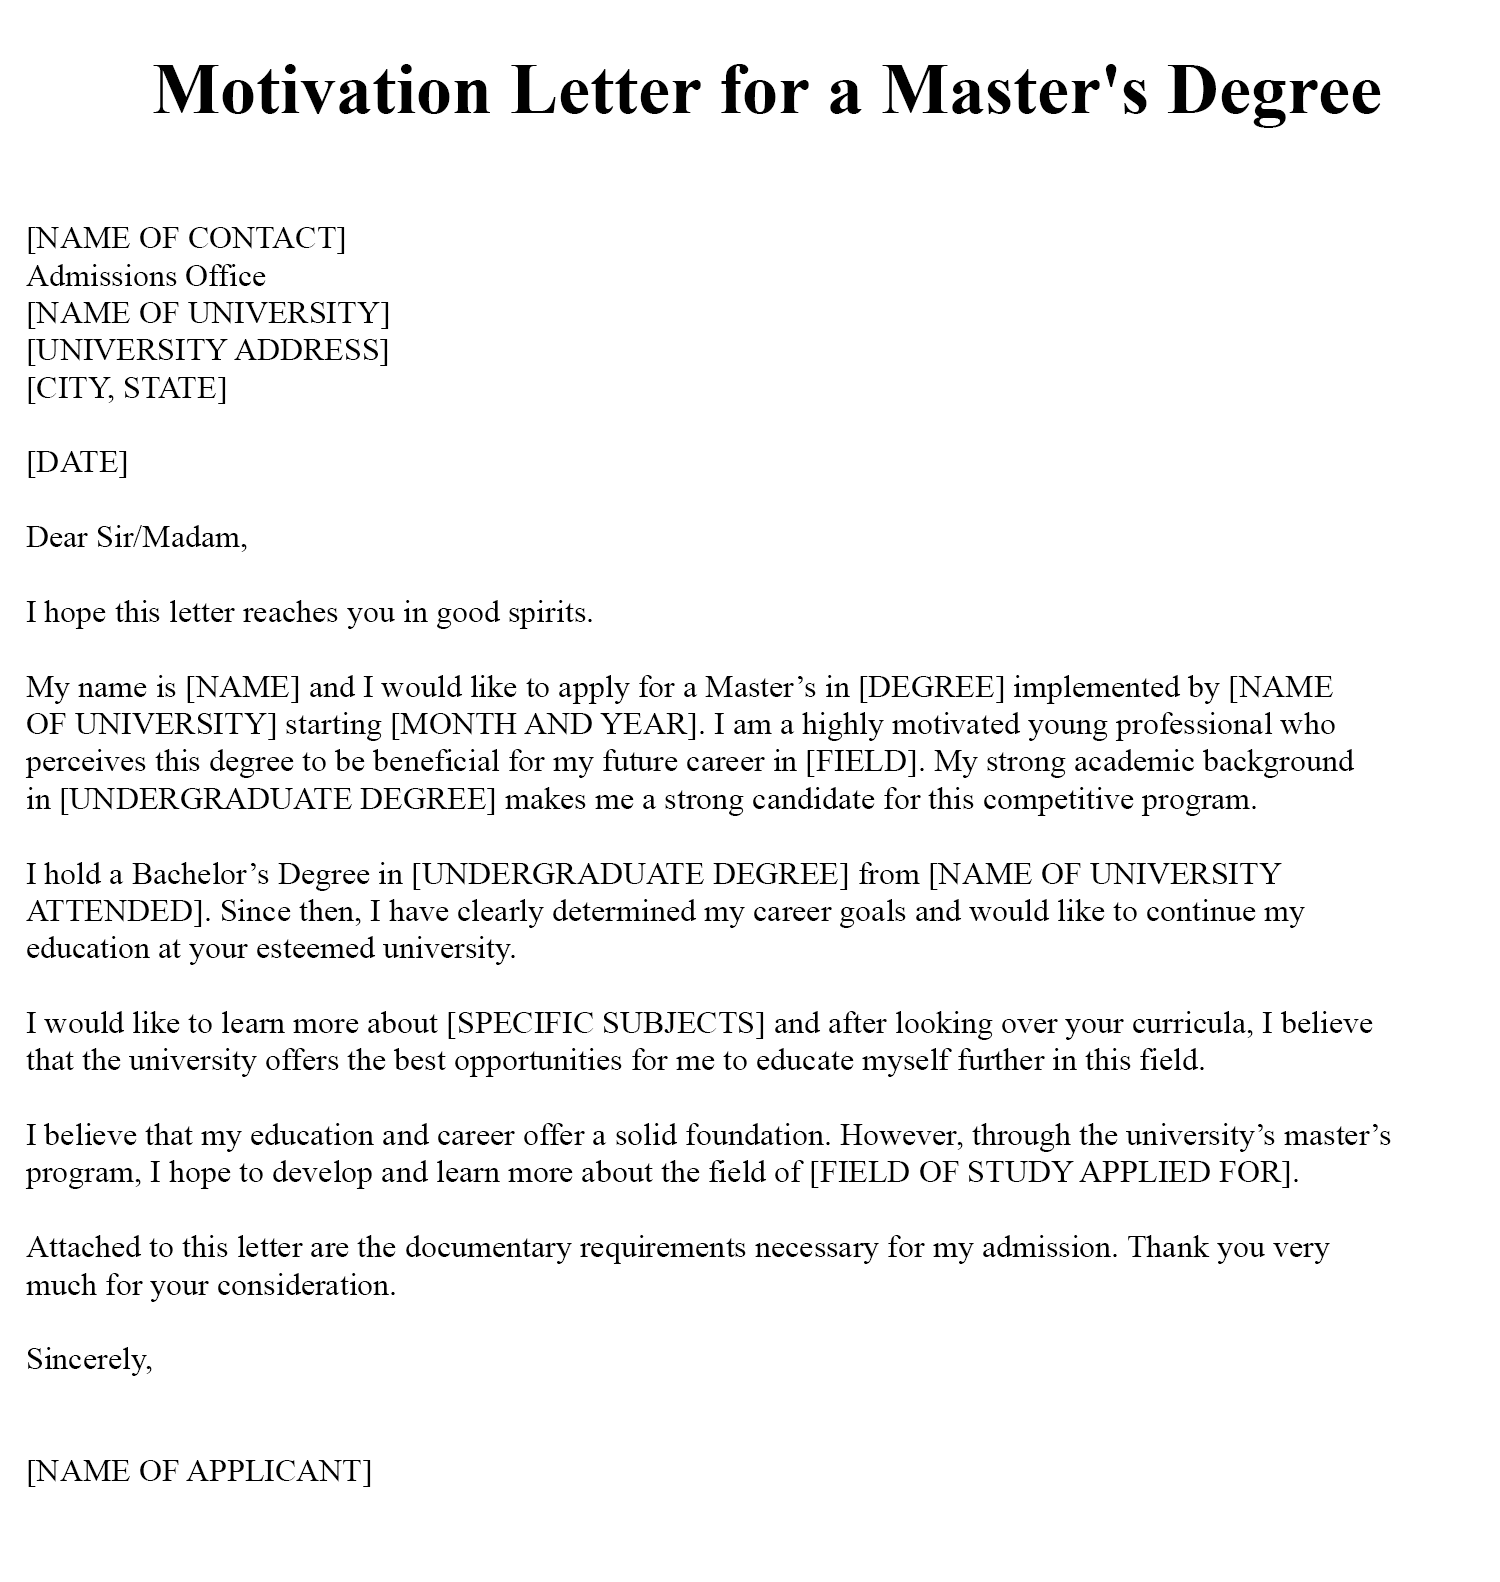 Sample Motivation Letter For Masters Degree PDF